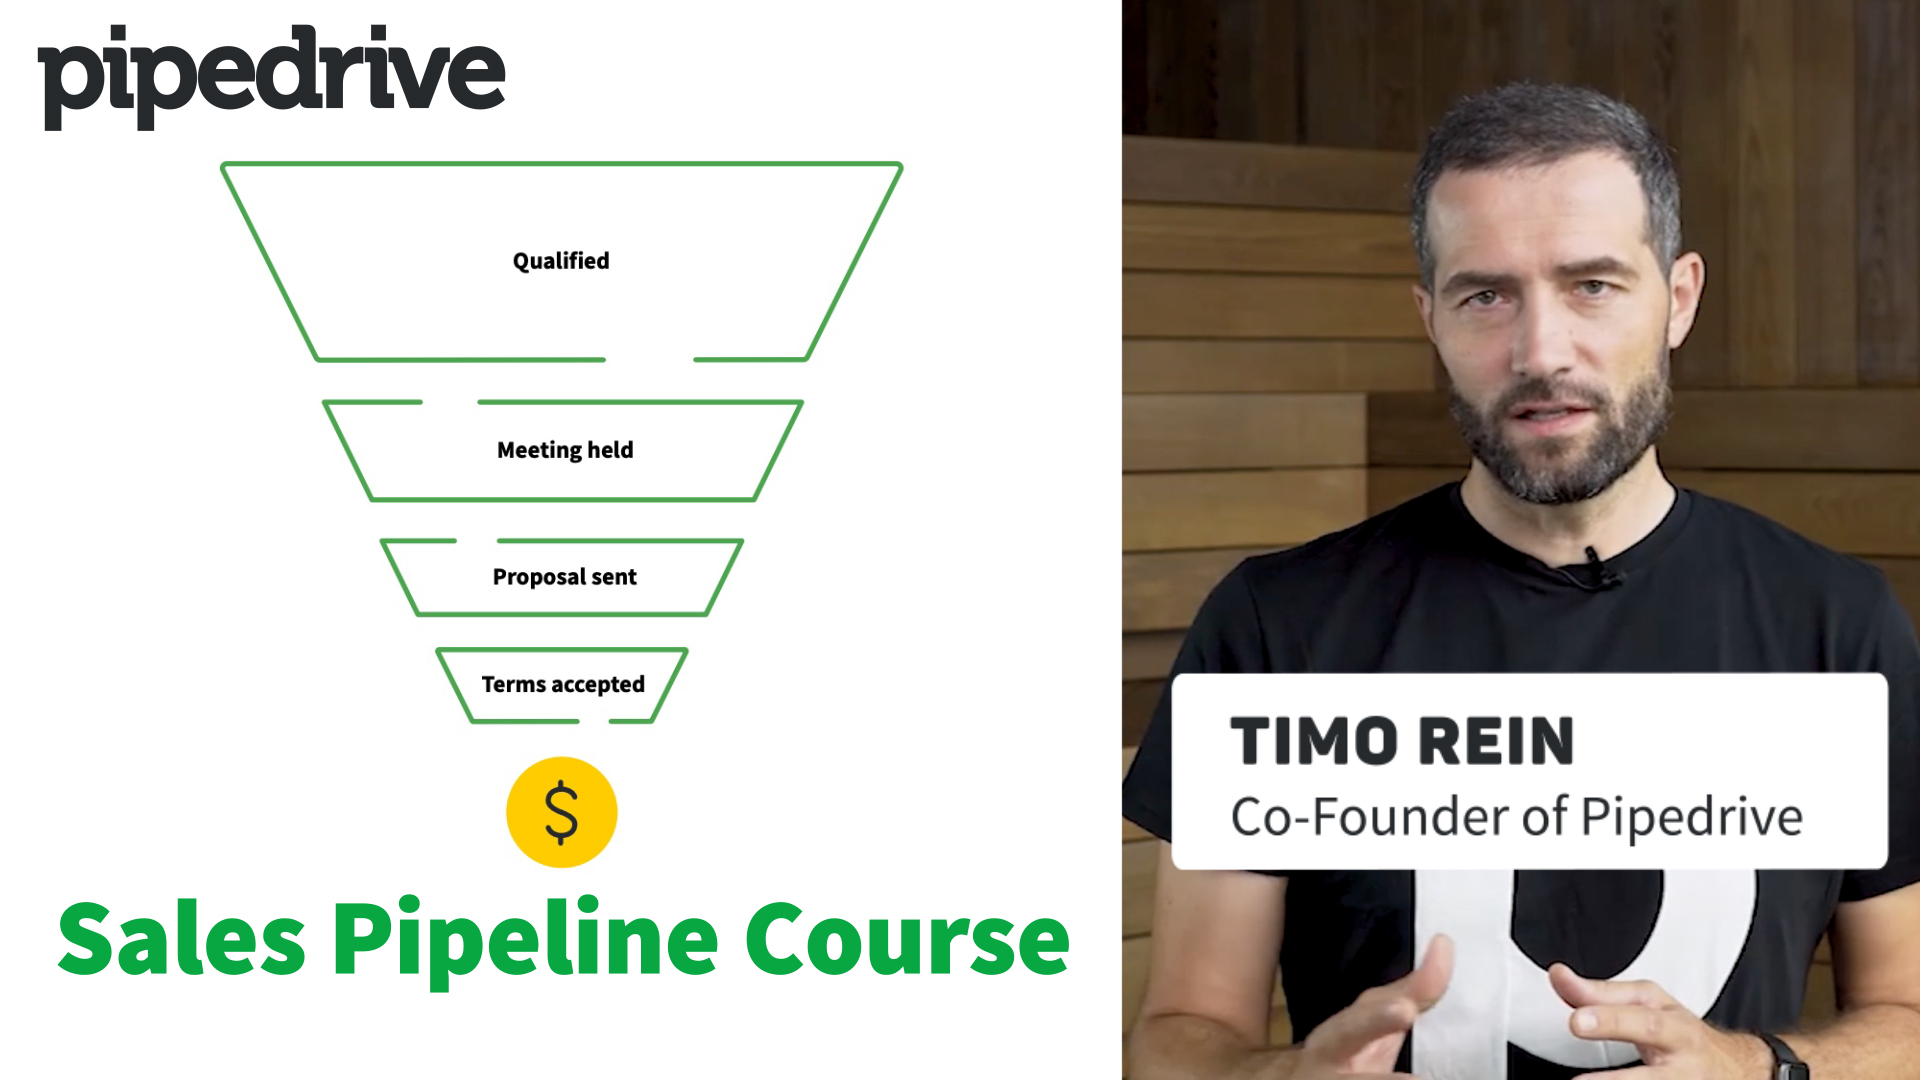 Sales Pipeline Course - Introduction